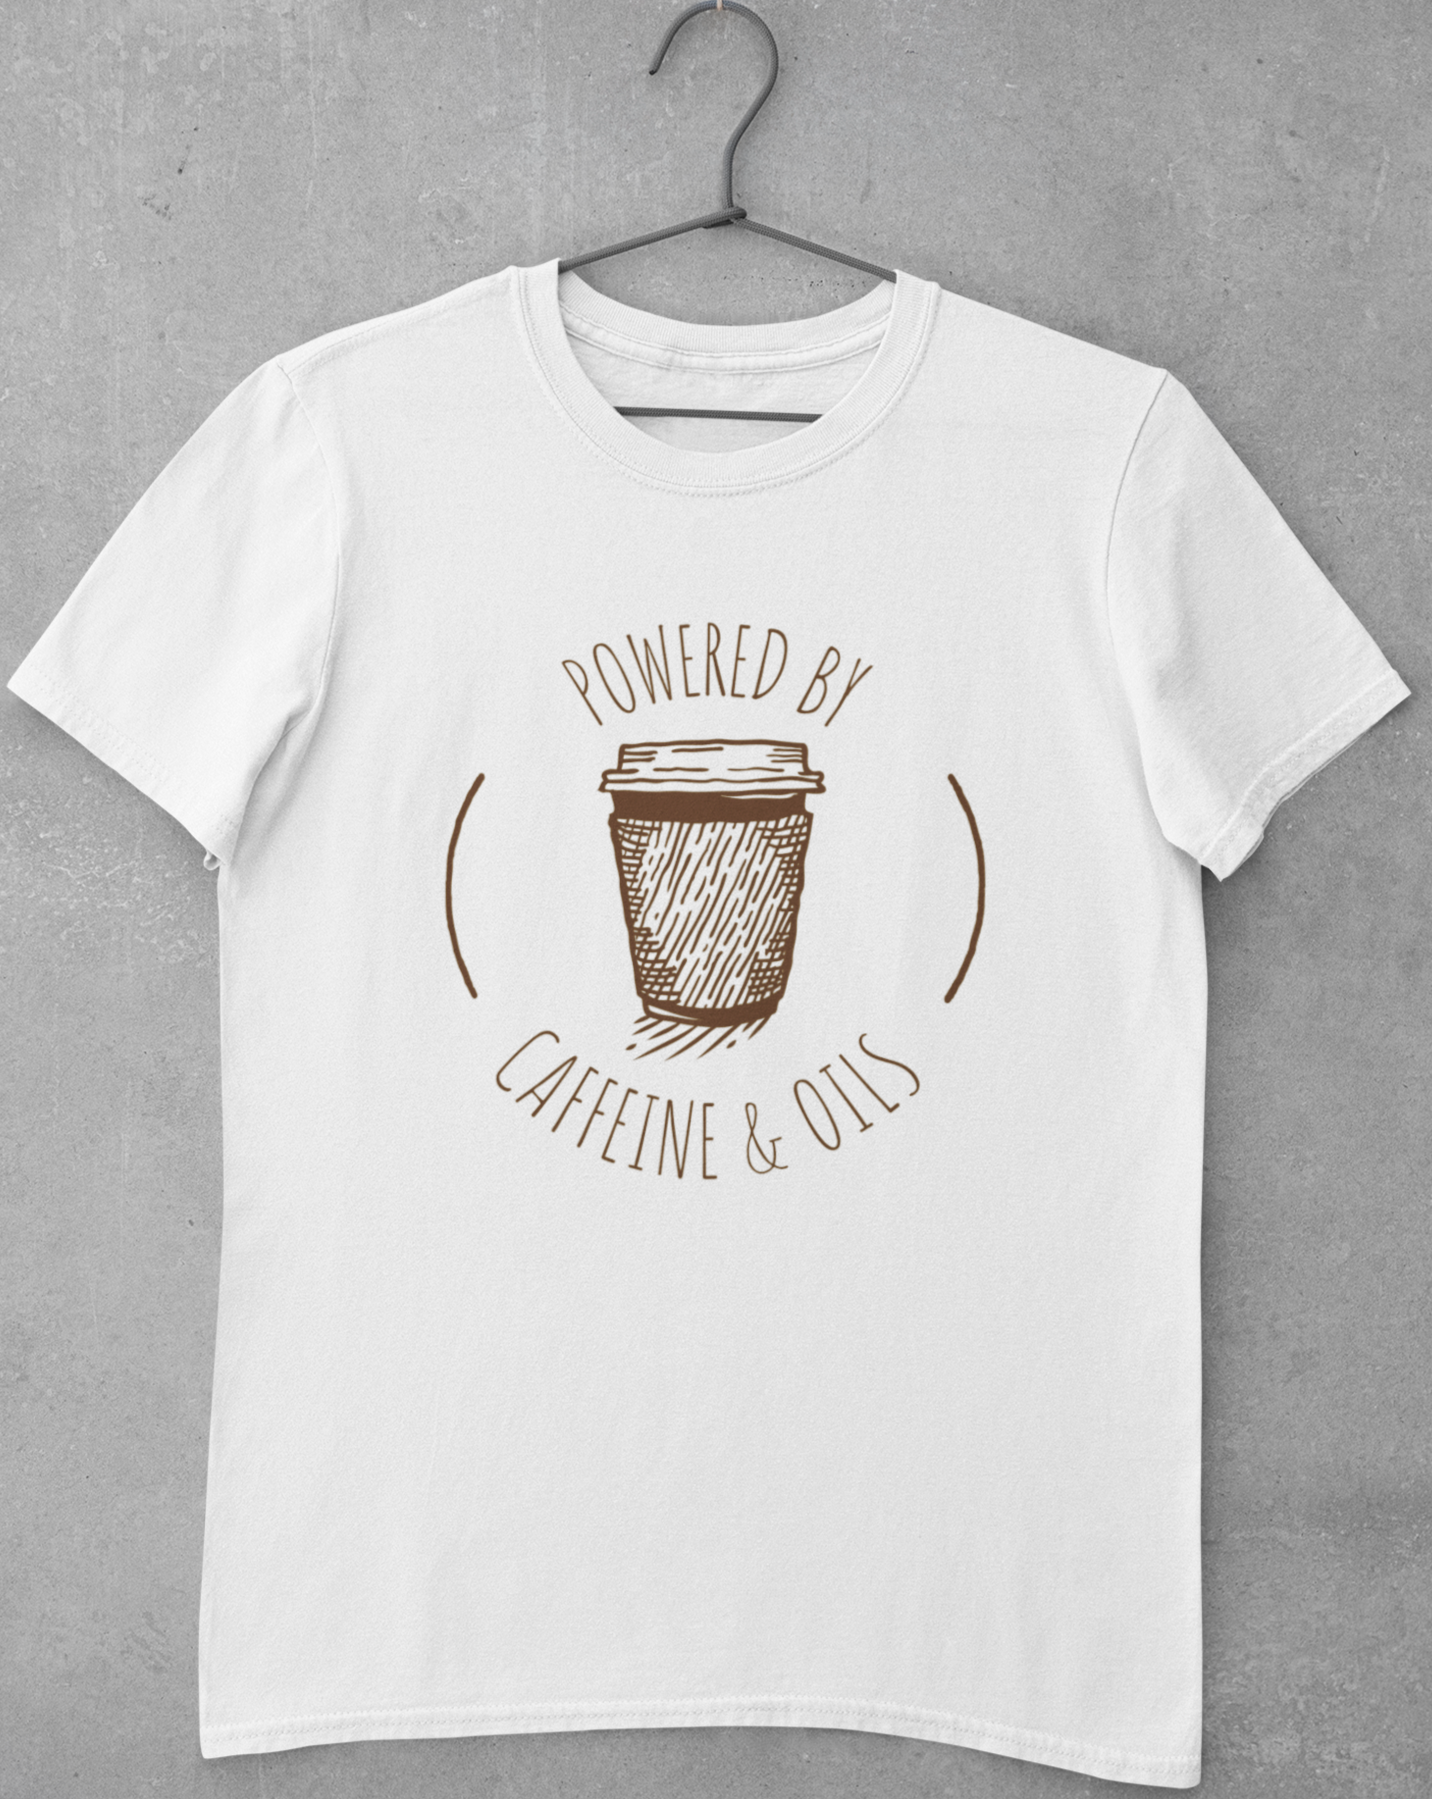 Powered By Caffeine And Oils T-shirt - Echo Essential Wear - Essential Oil T-Shirt Fashion